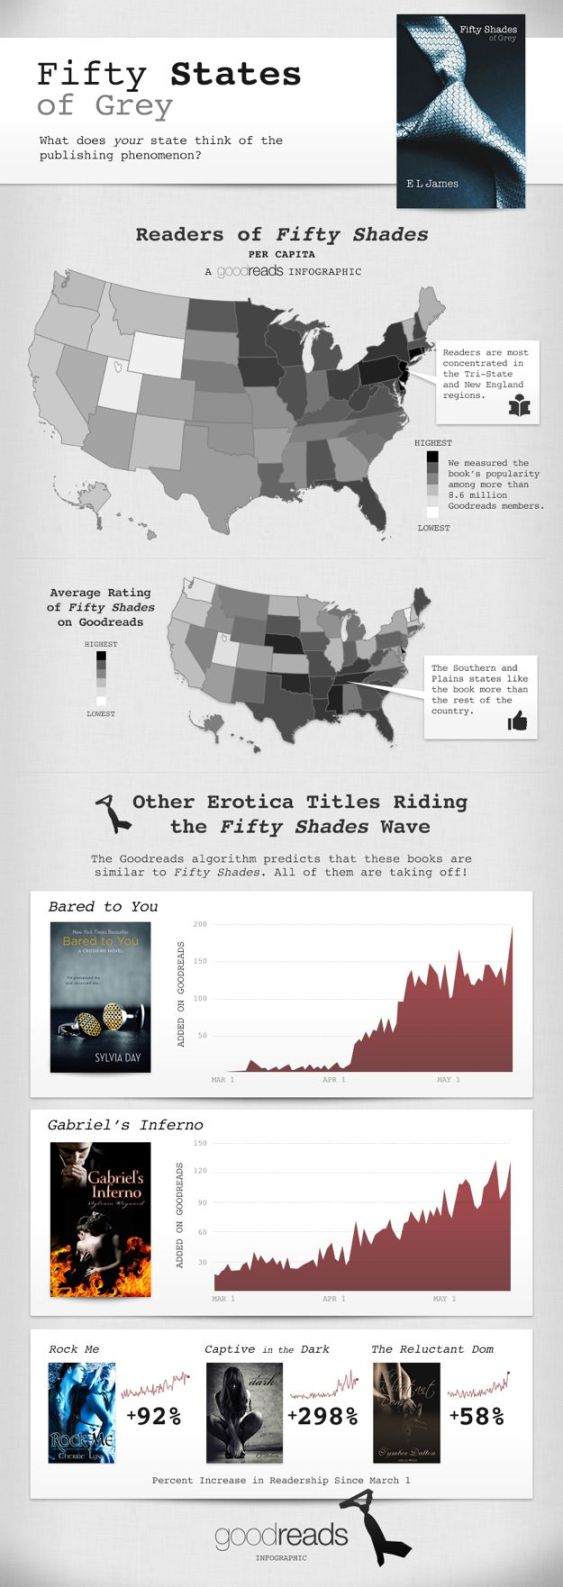 Delaware Loves 50 Shades of Gray (infographic) Infographic